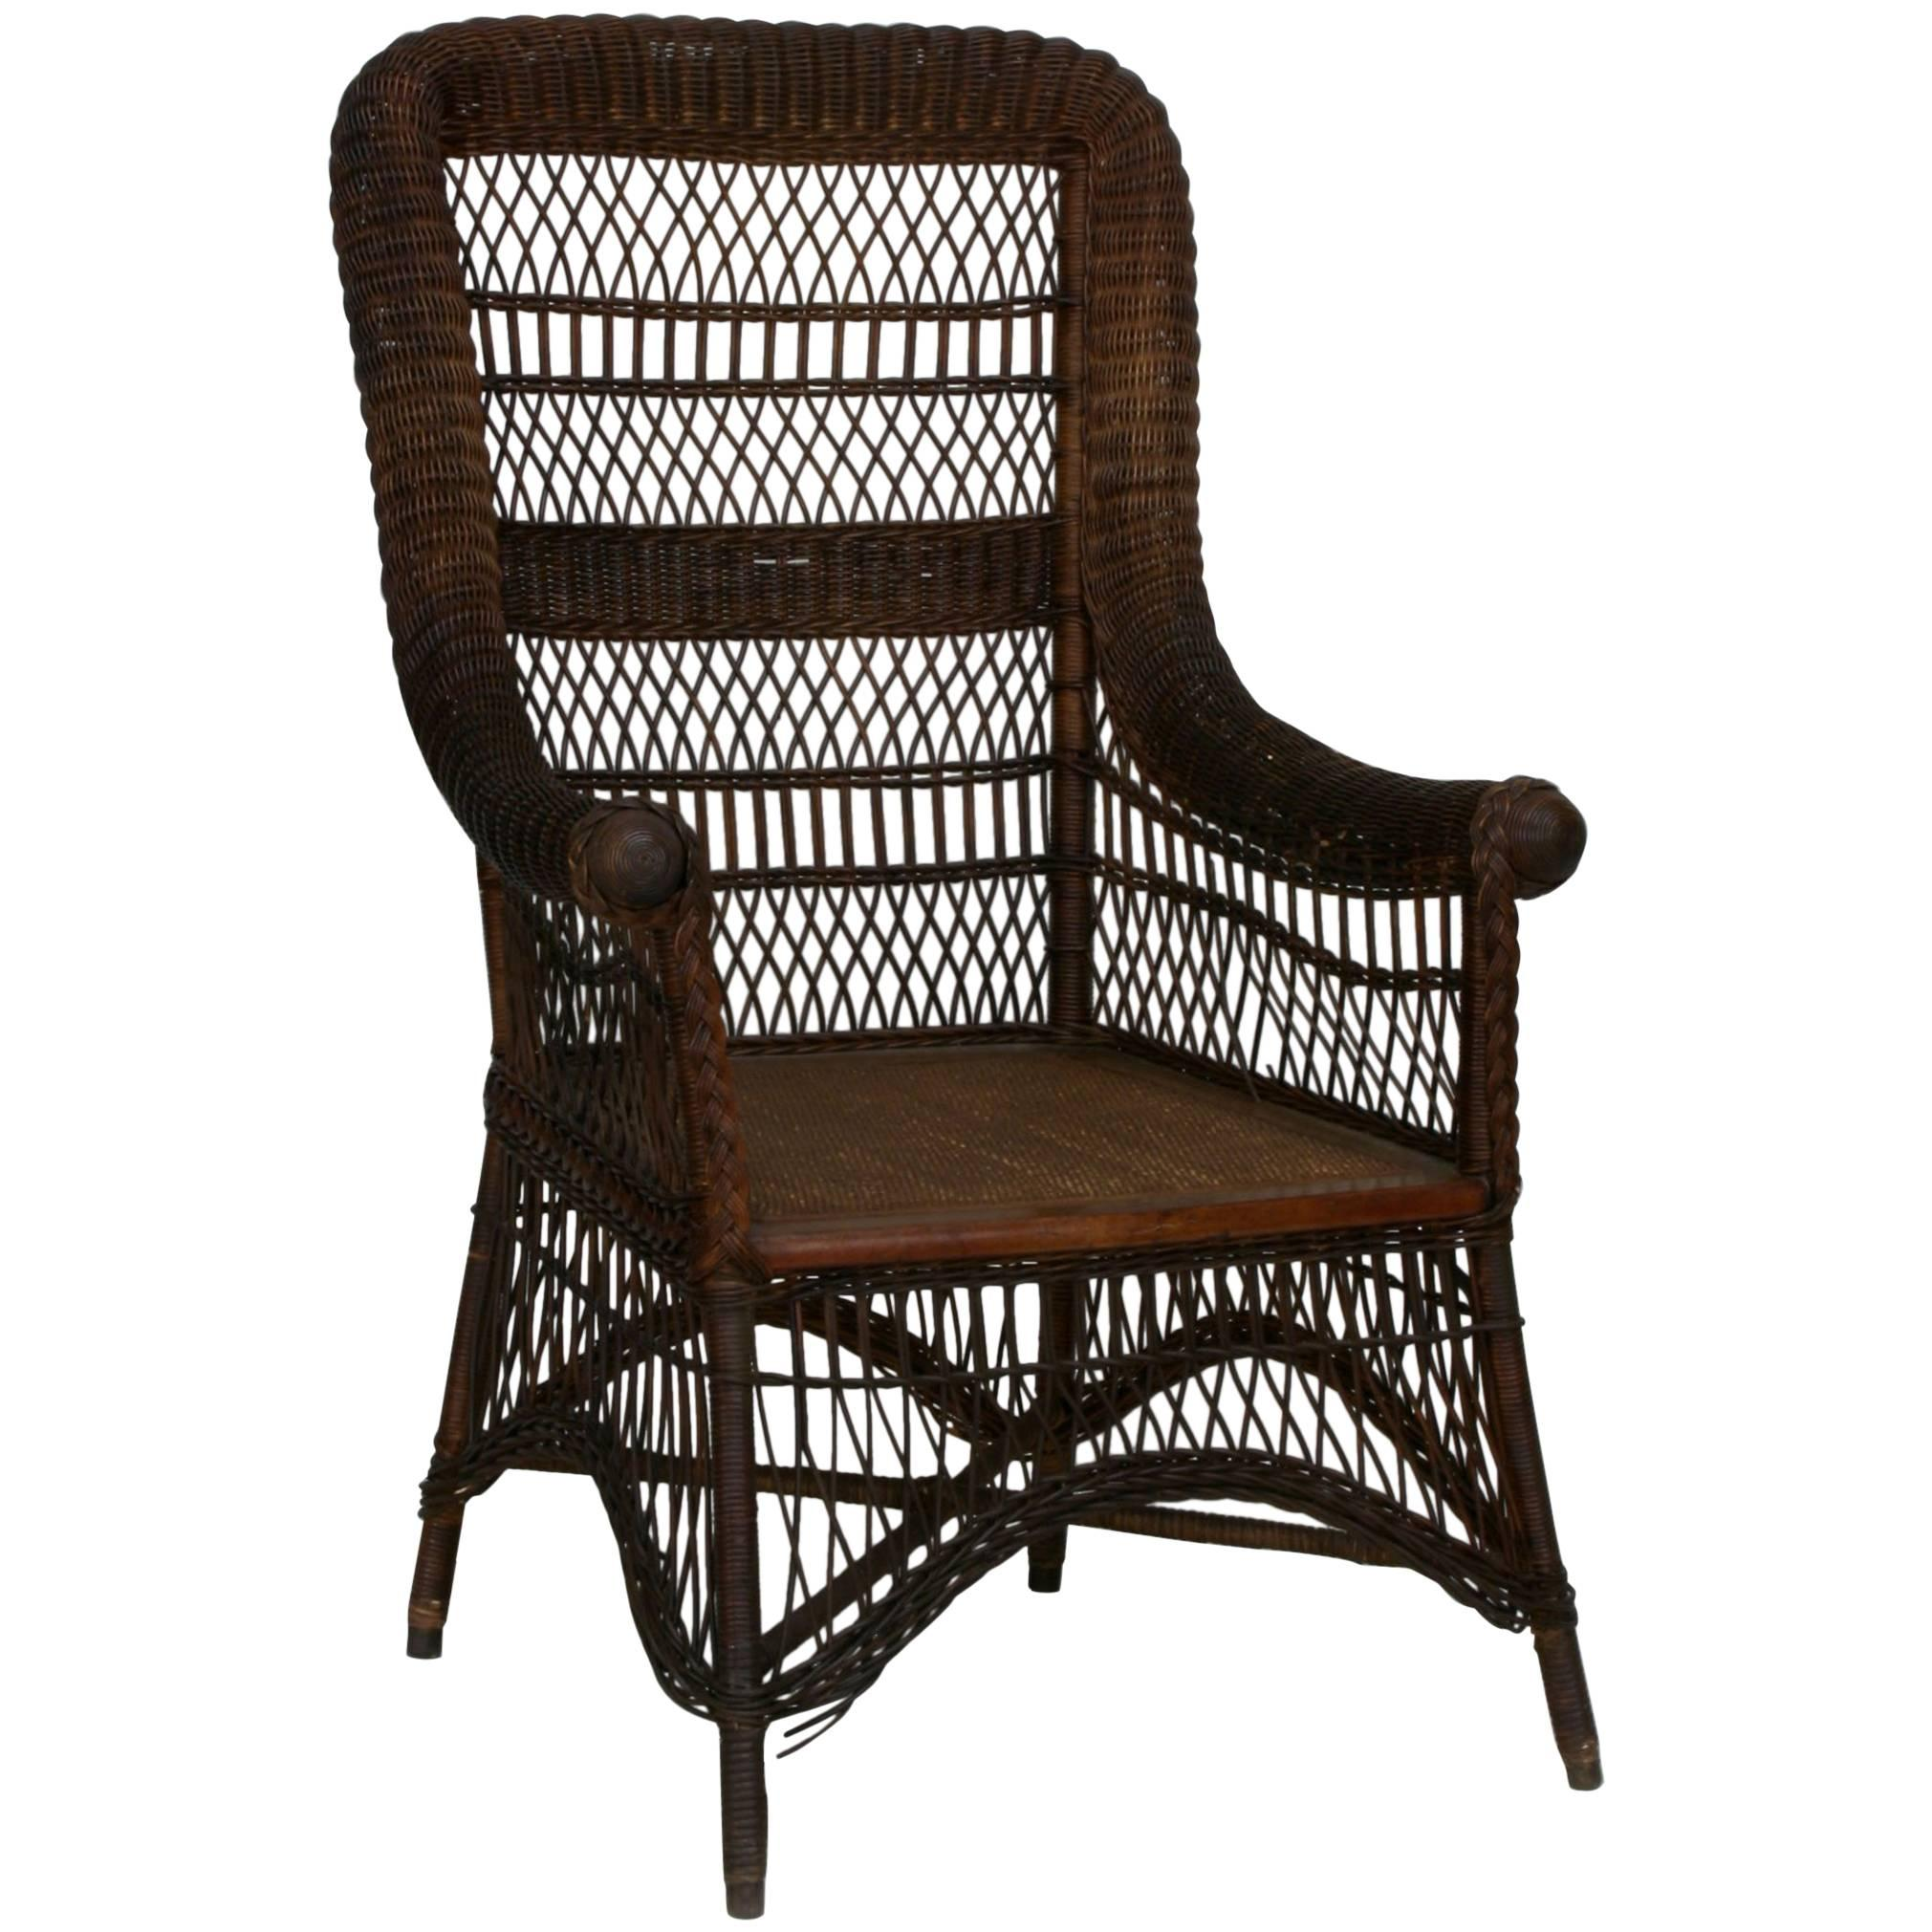 American Victorian/Mission Dark Stained Wicker Armchair